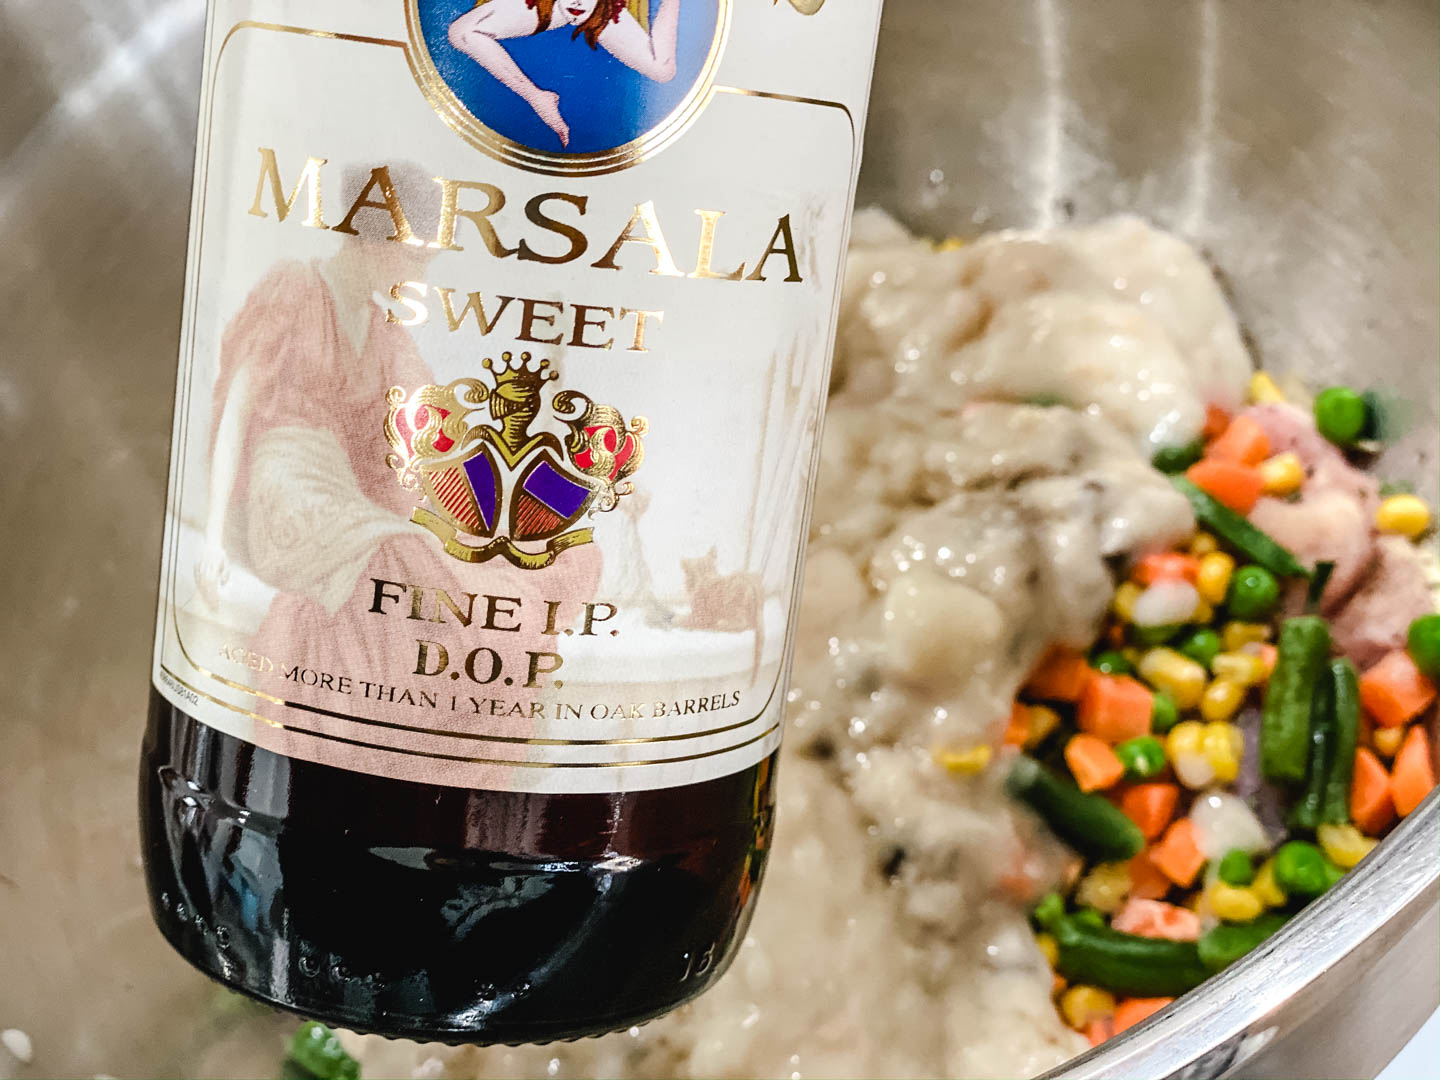 Picture of a marsala wine with veggies and cream of mushroom and chicken soup in the background.